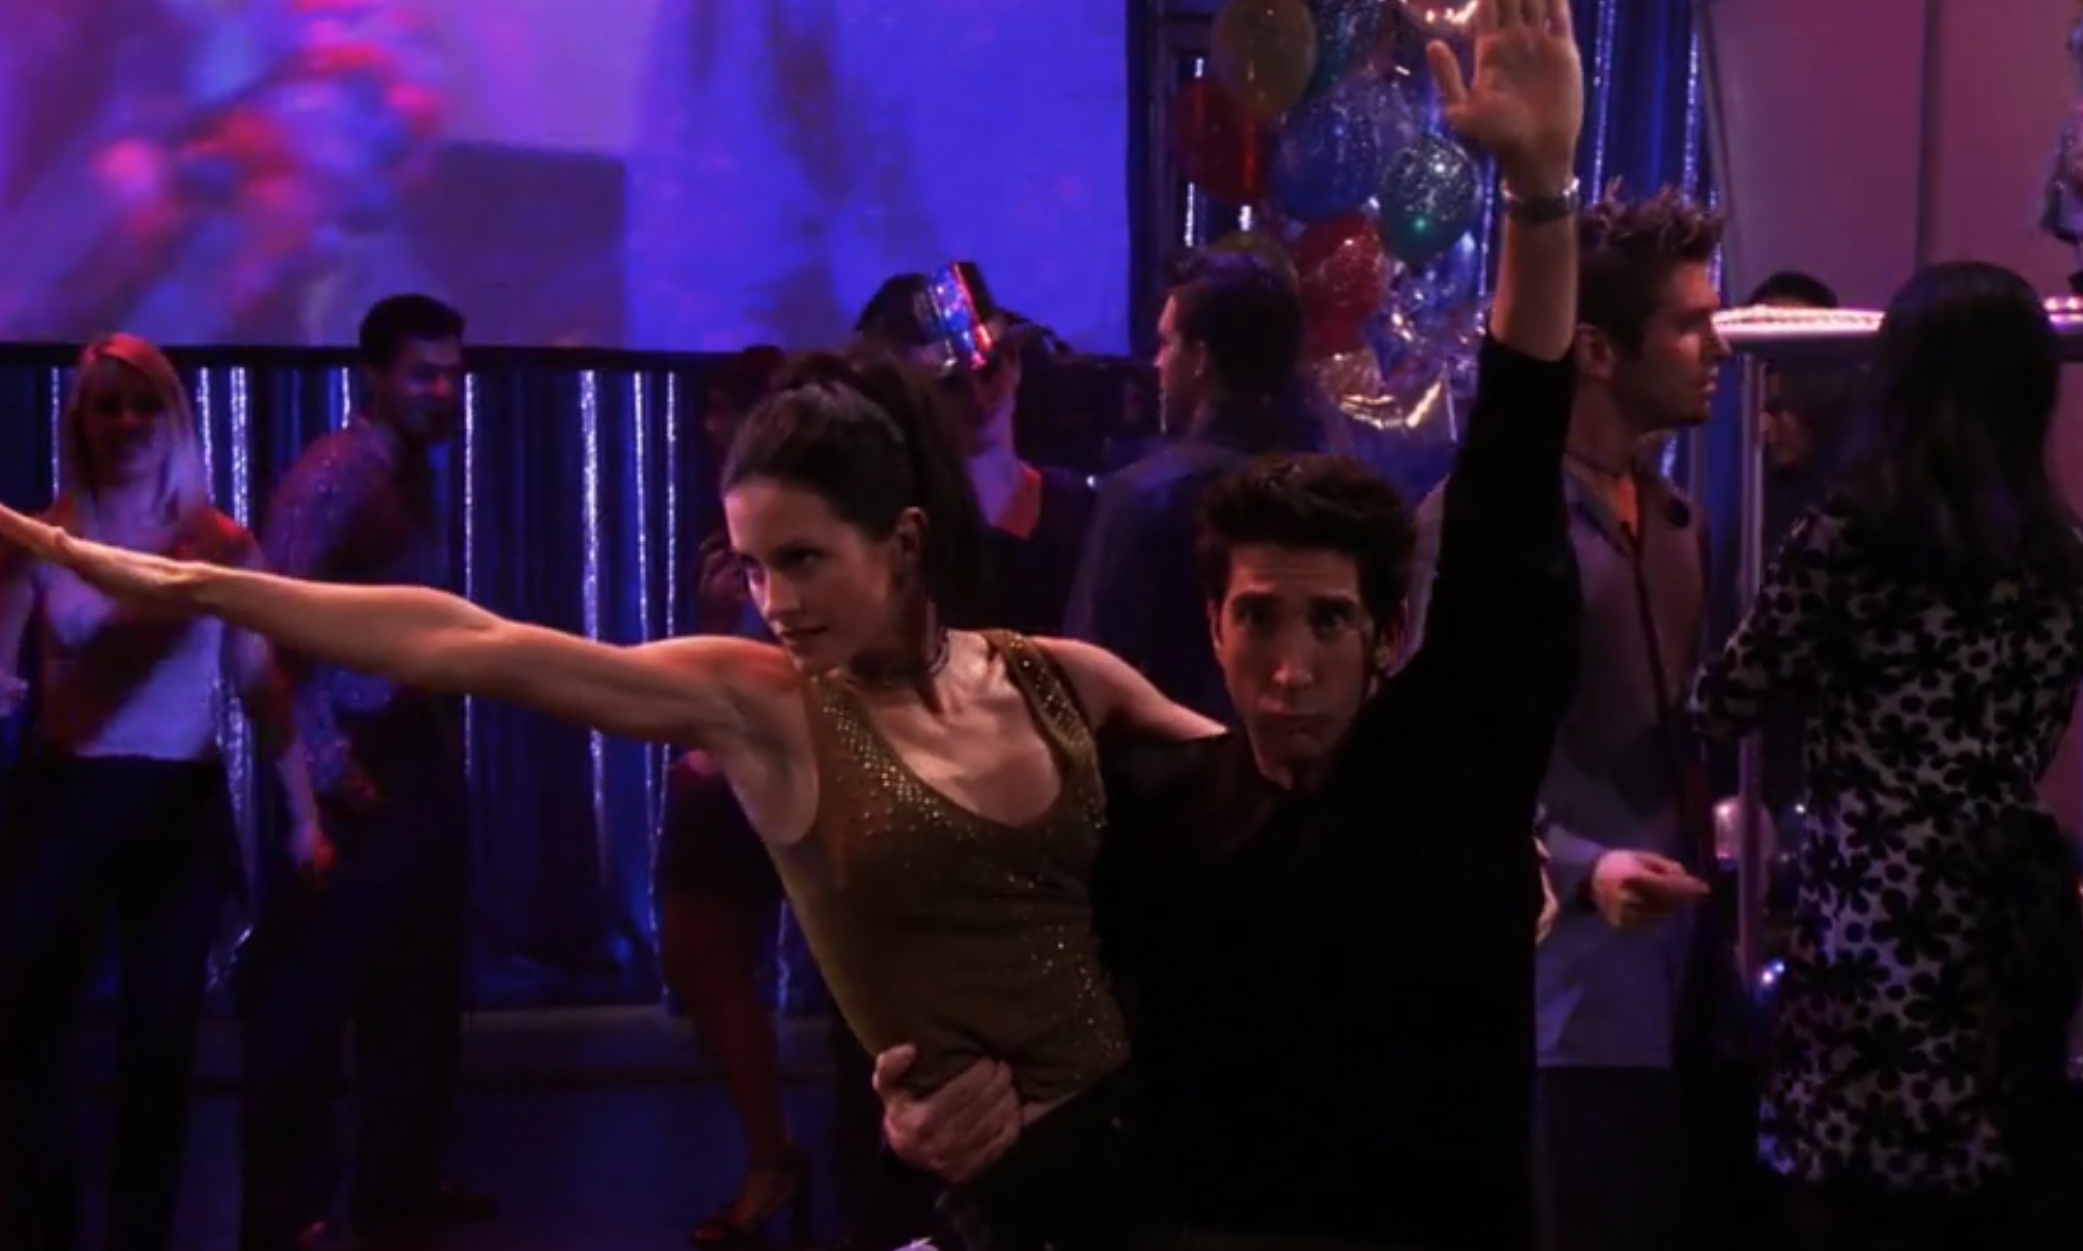 Monica poses with her arm outstretched as she's picked up by Ross who has one arm in the air